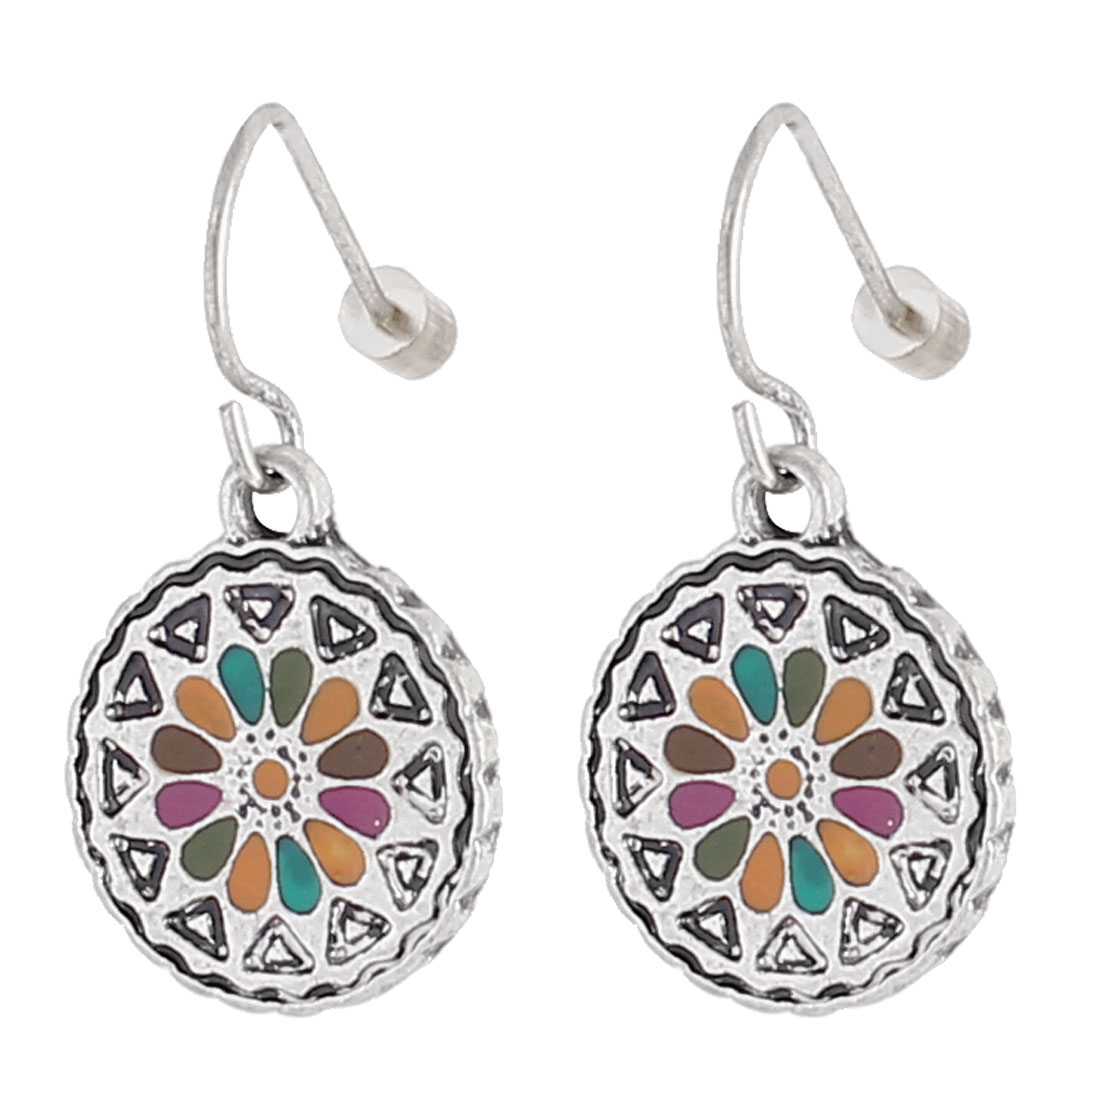 "Women Metal Filled Circle Dangling Pendant Hook Earrings Earbob Colorful Silver Tone 1"" Length Pair"